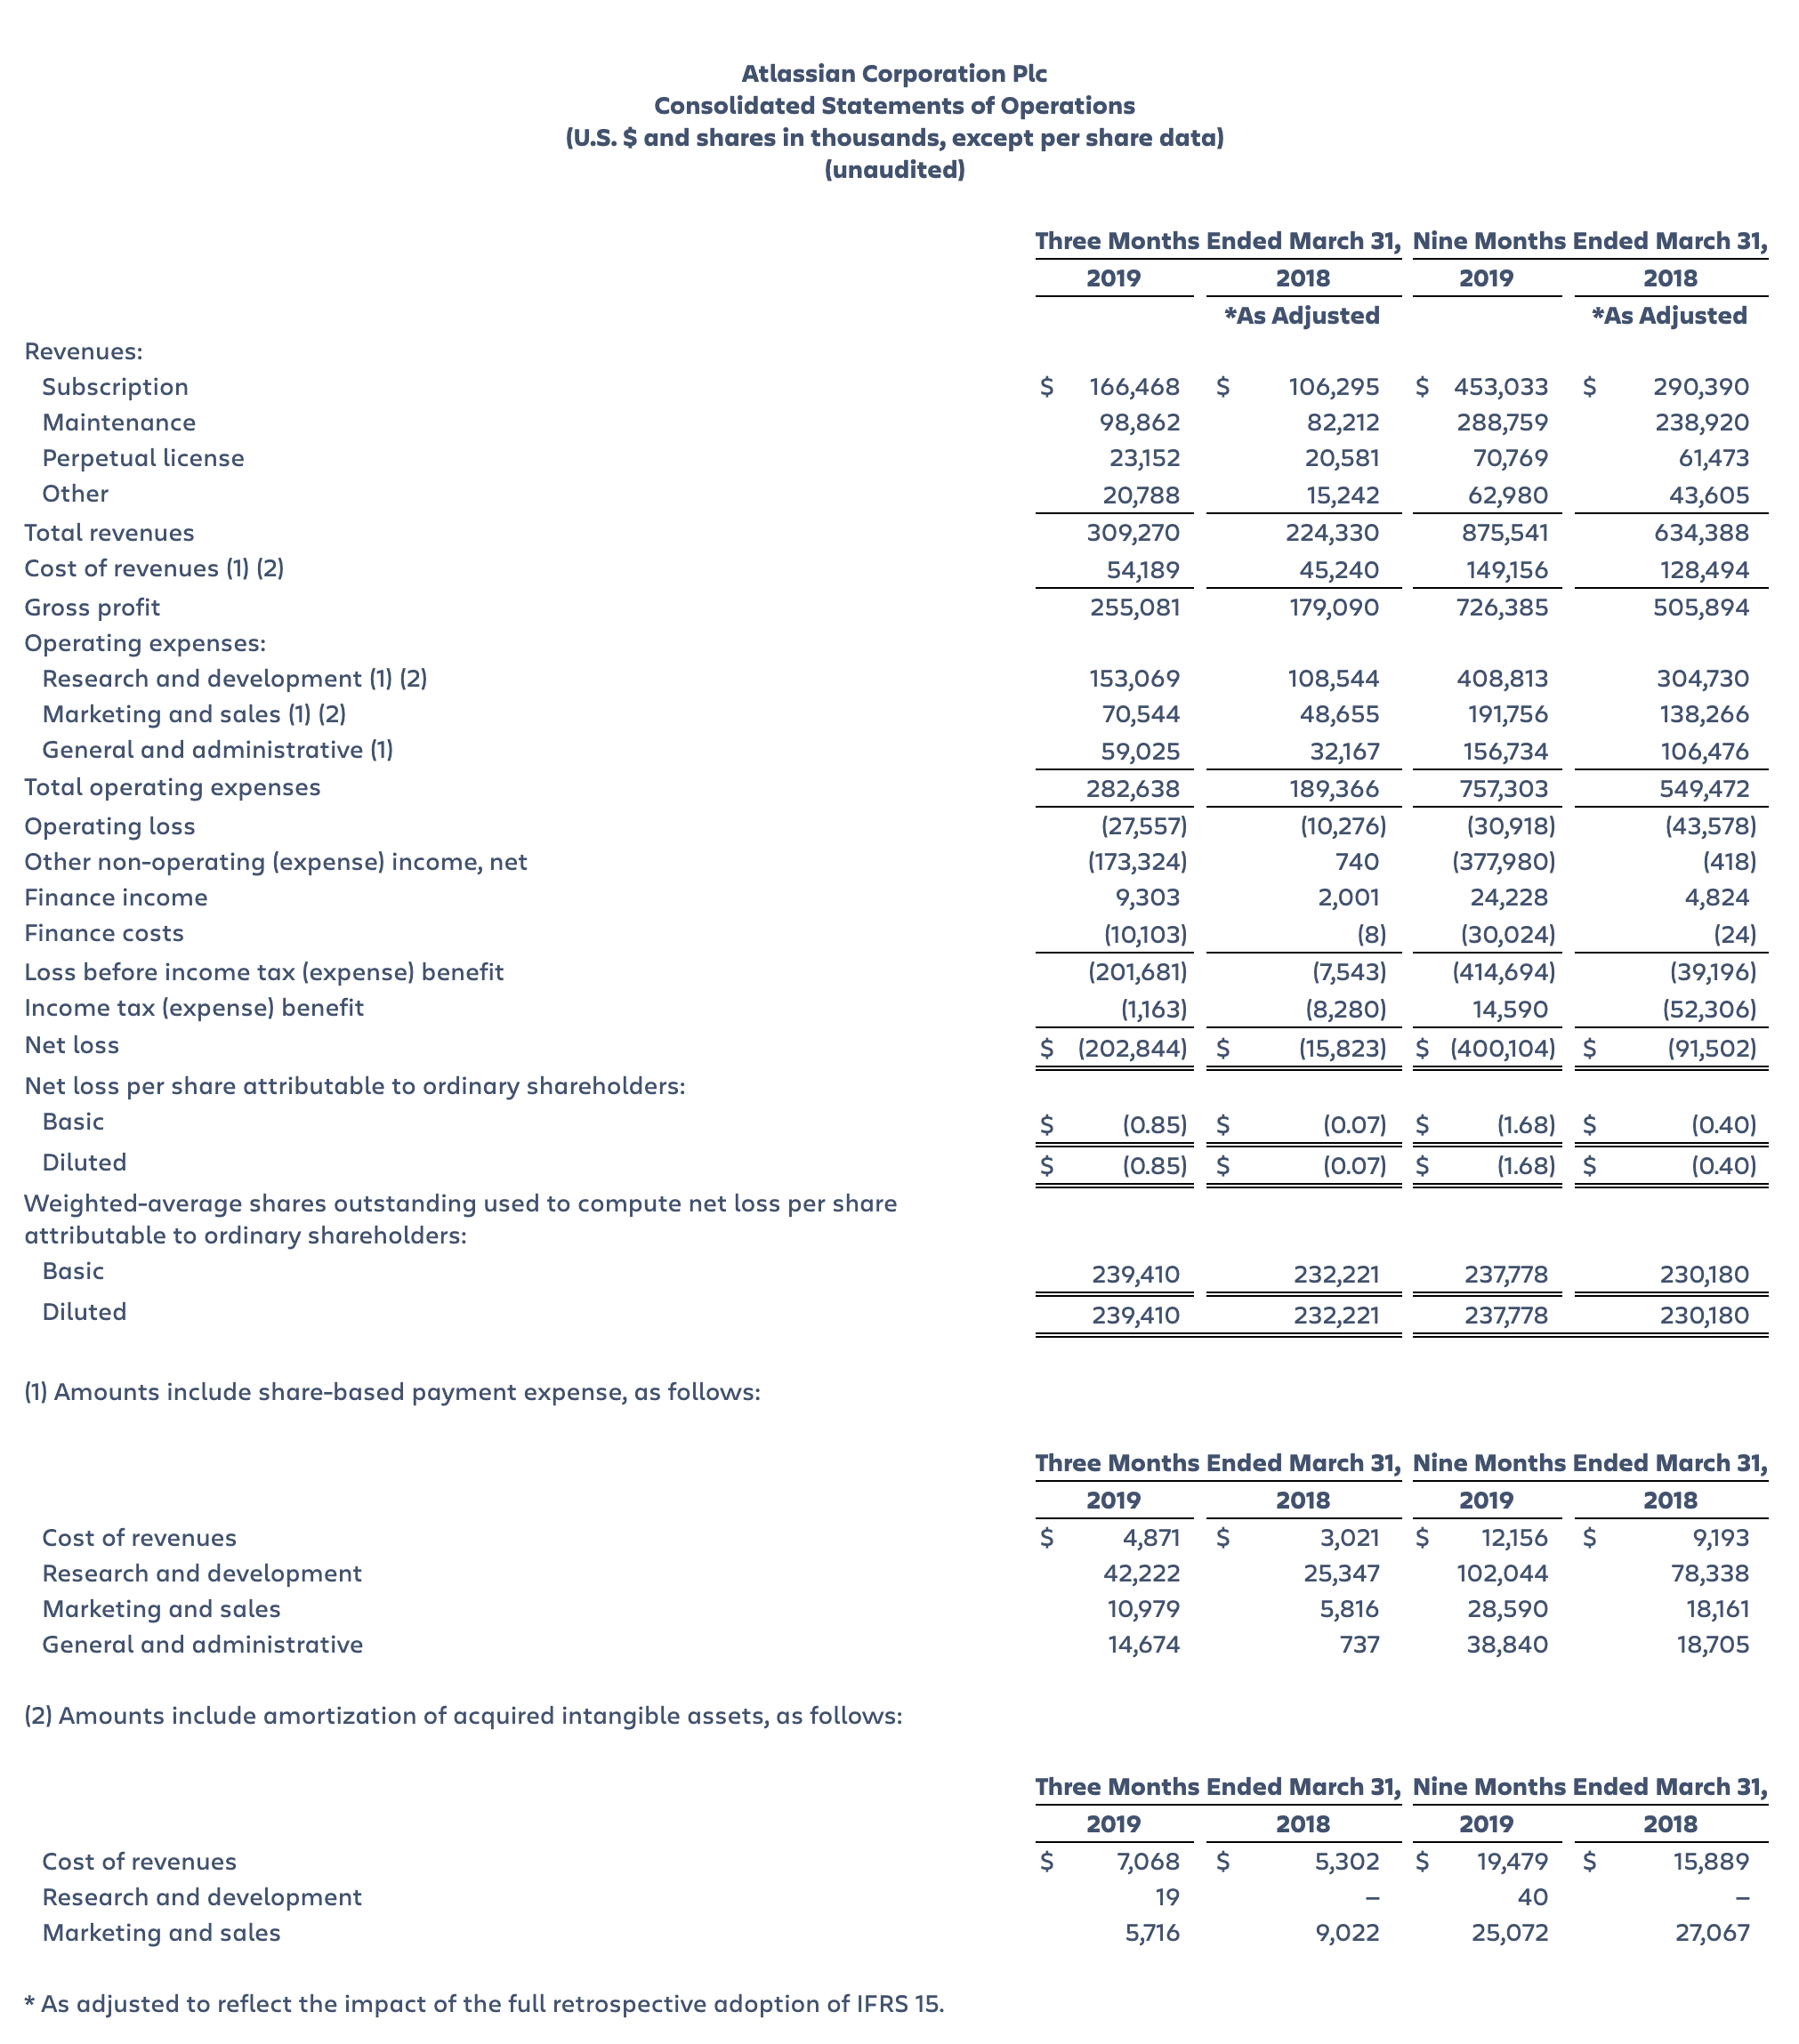 Atlassian Corporation Plc Consolidated Statements of Operations